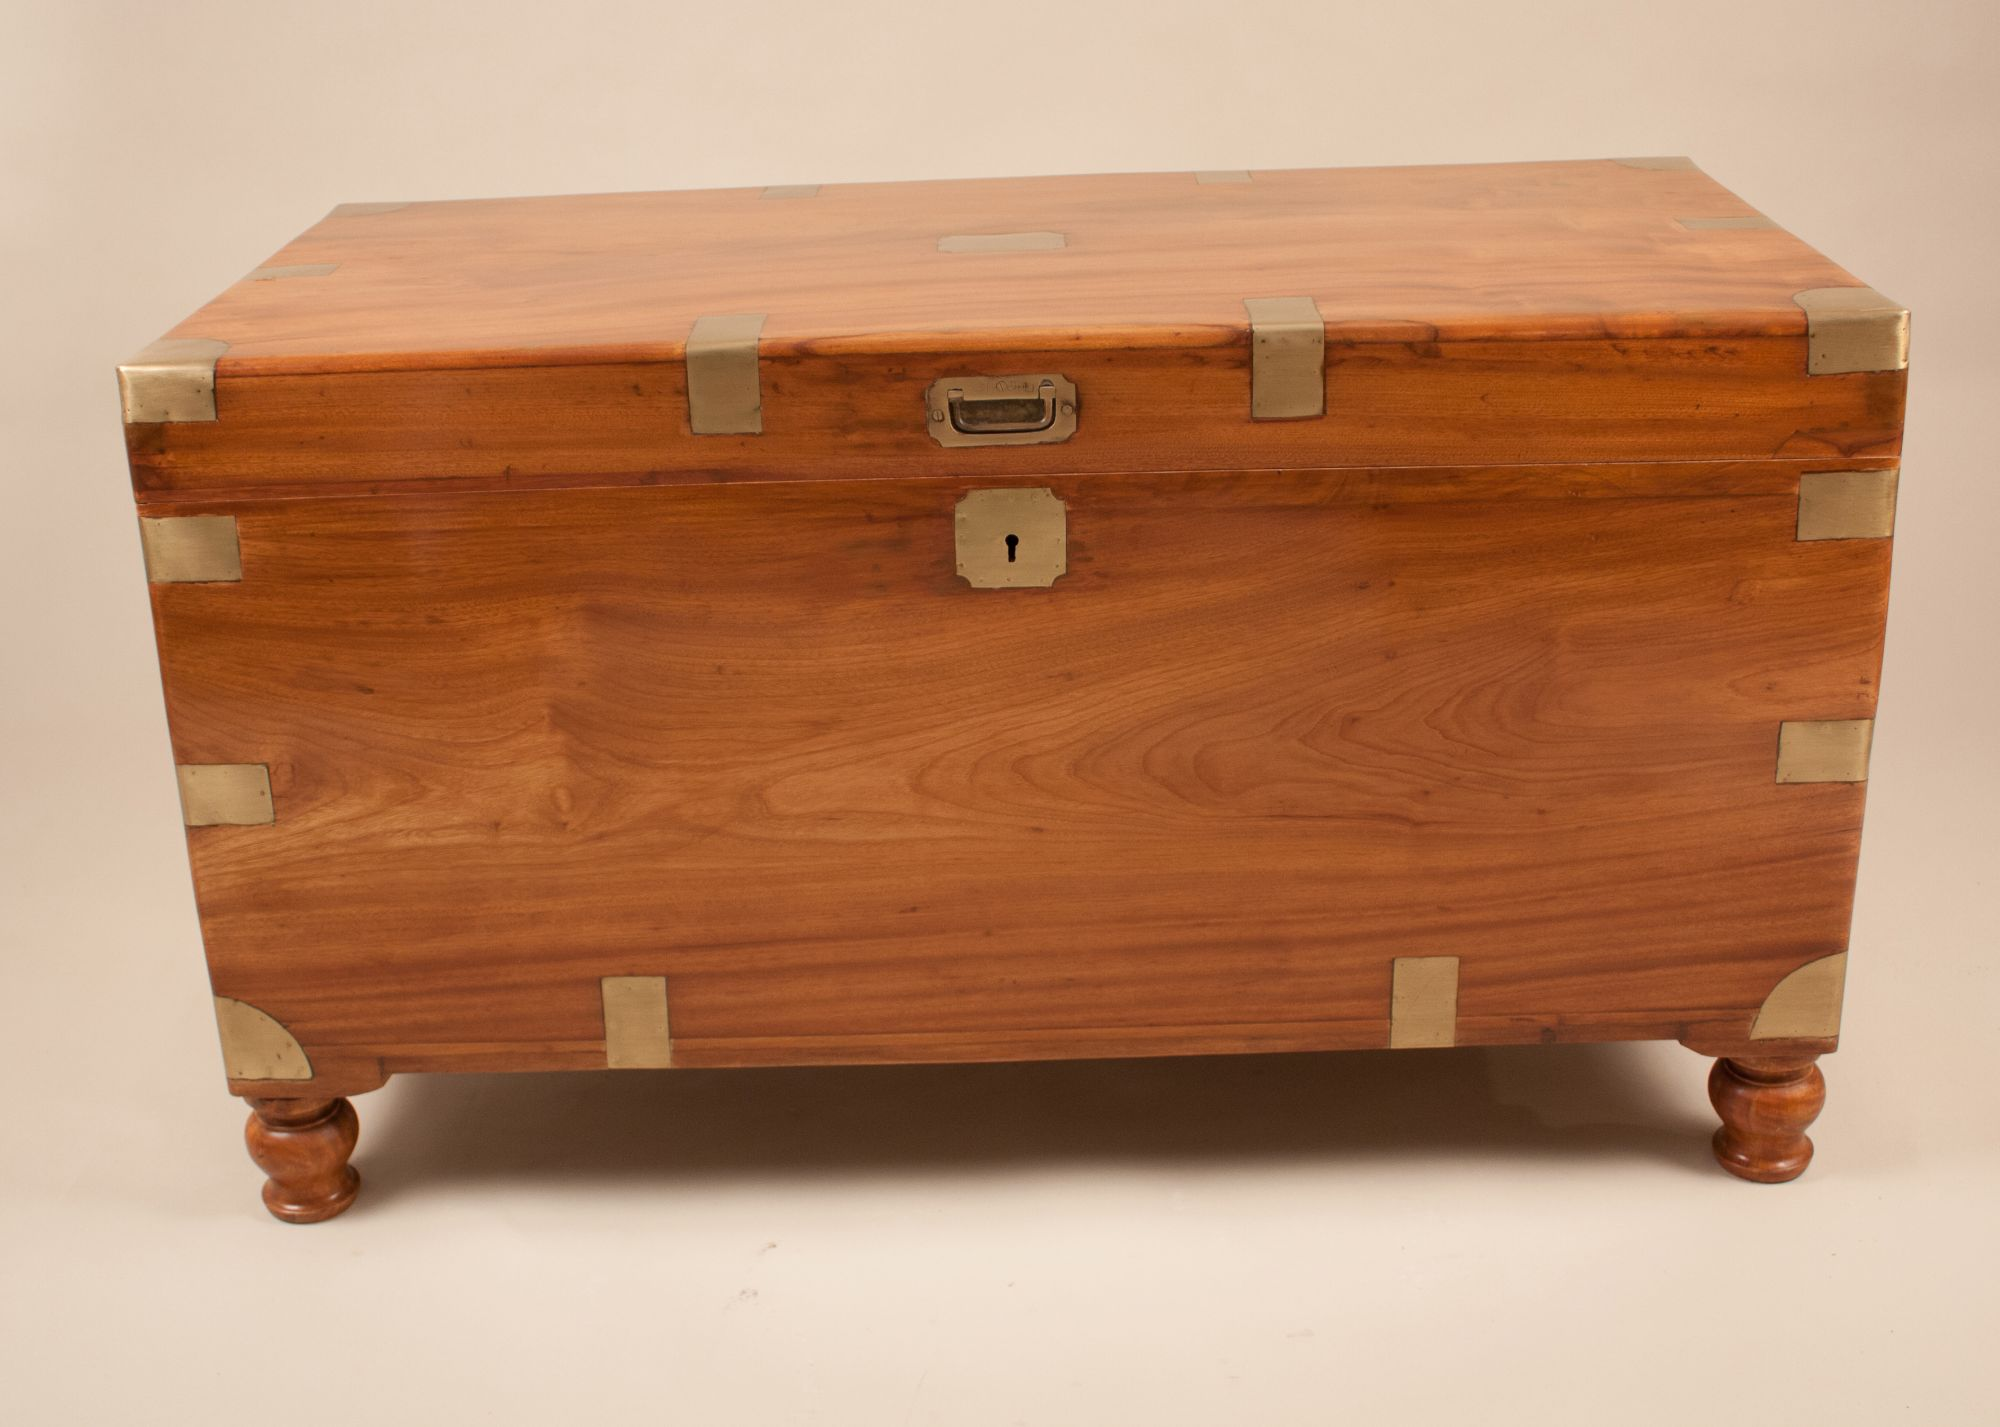 Home furniture english camphor wood captains chest